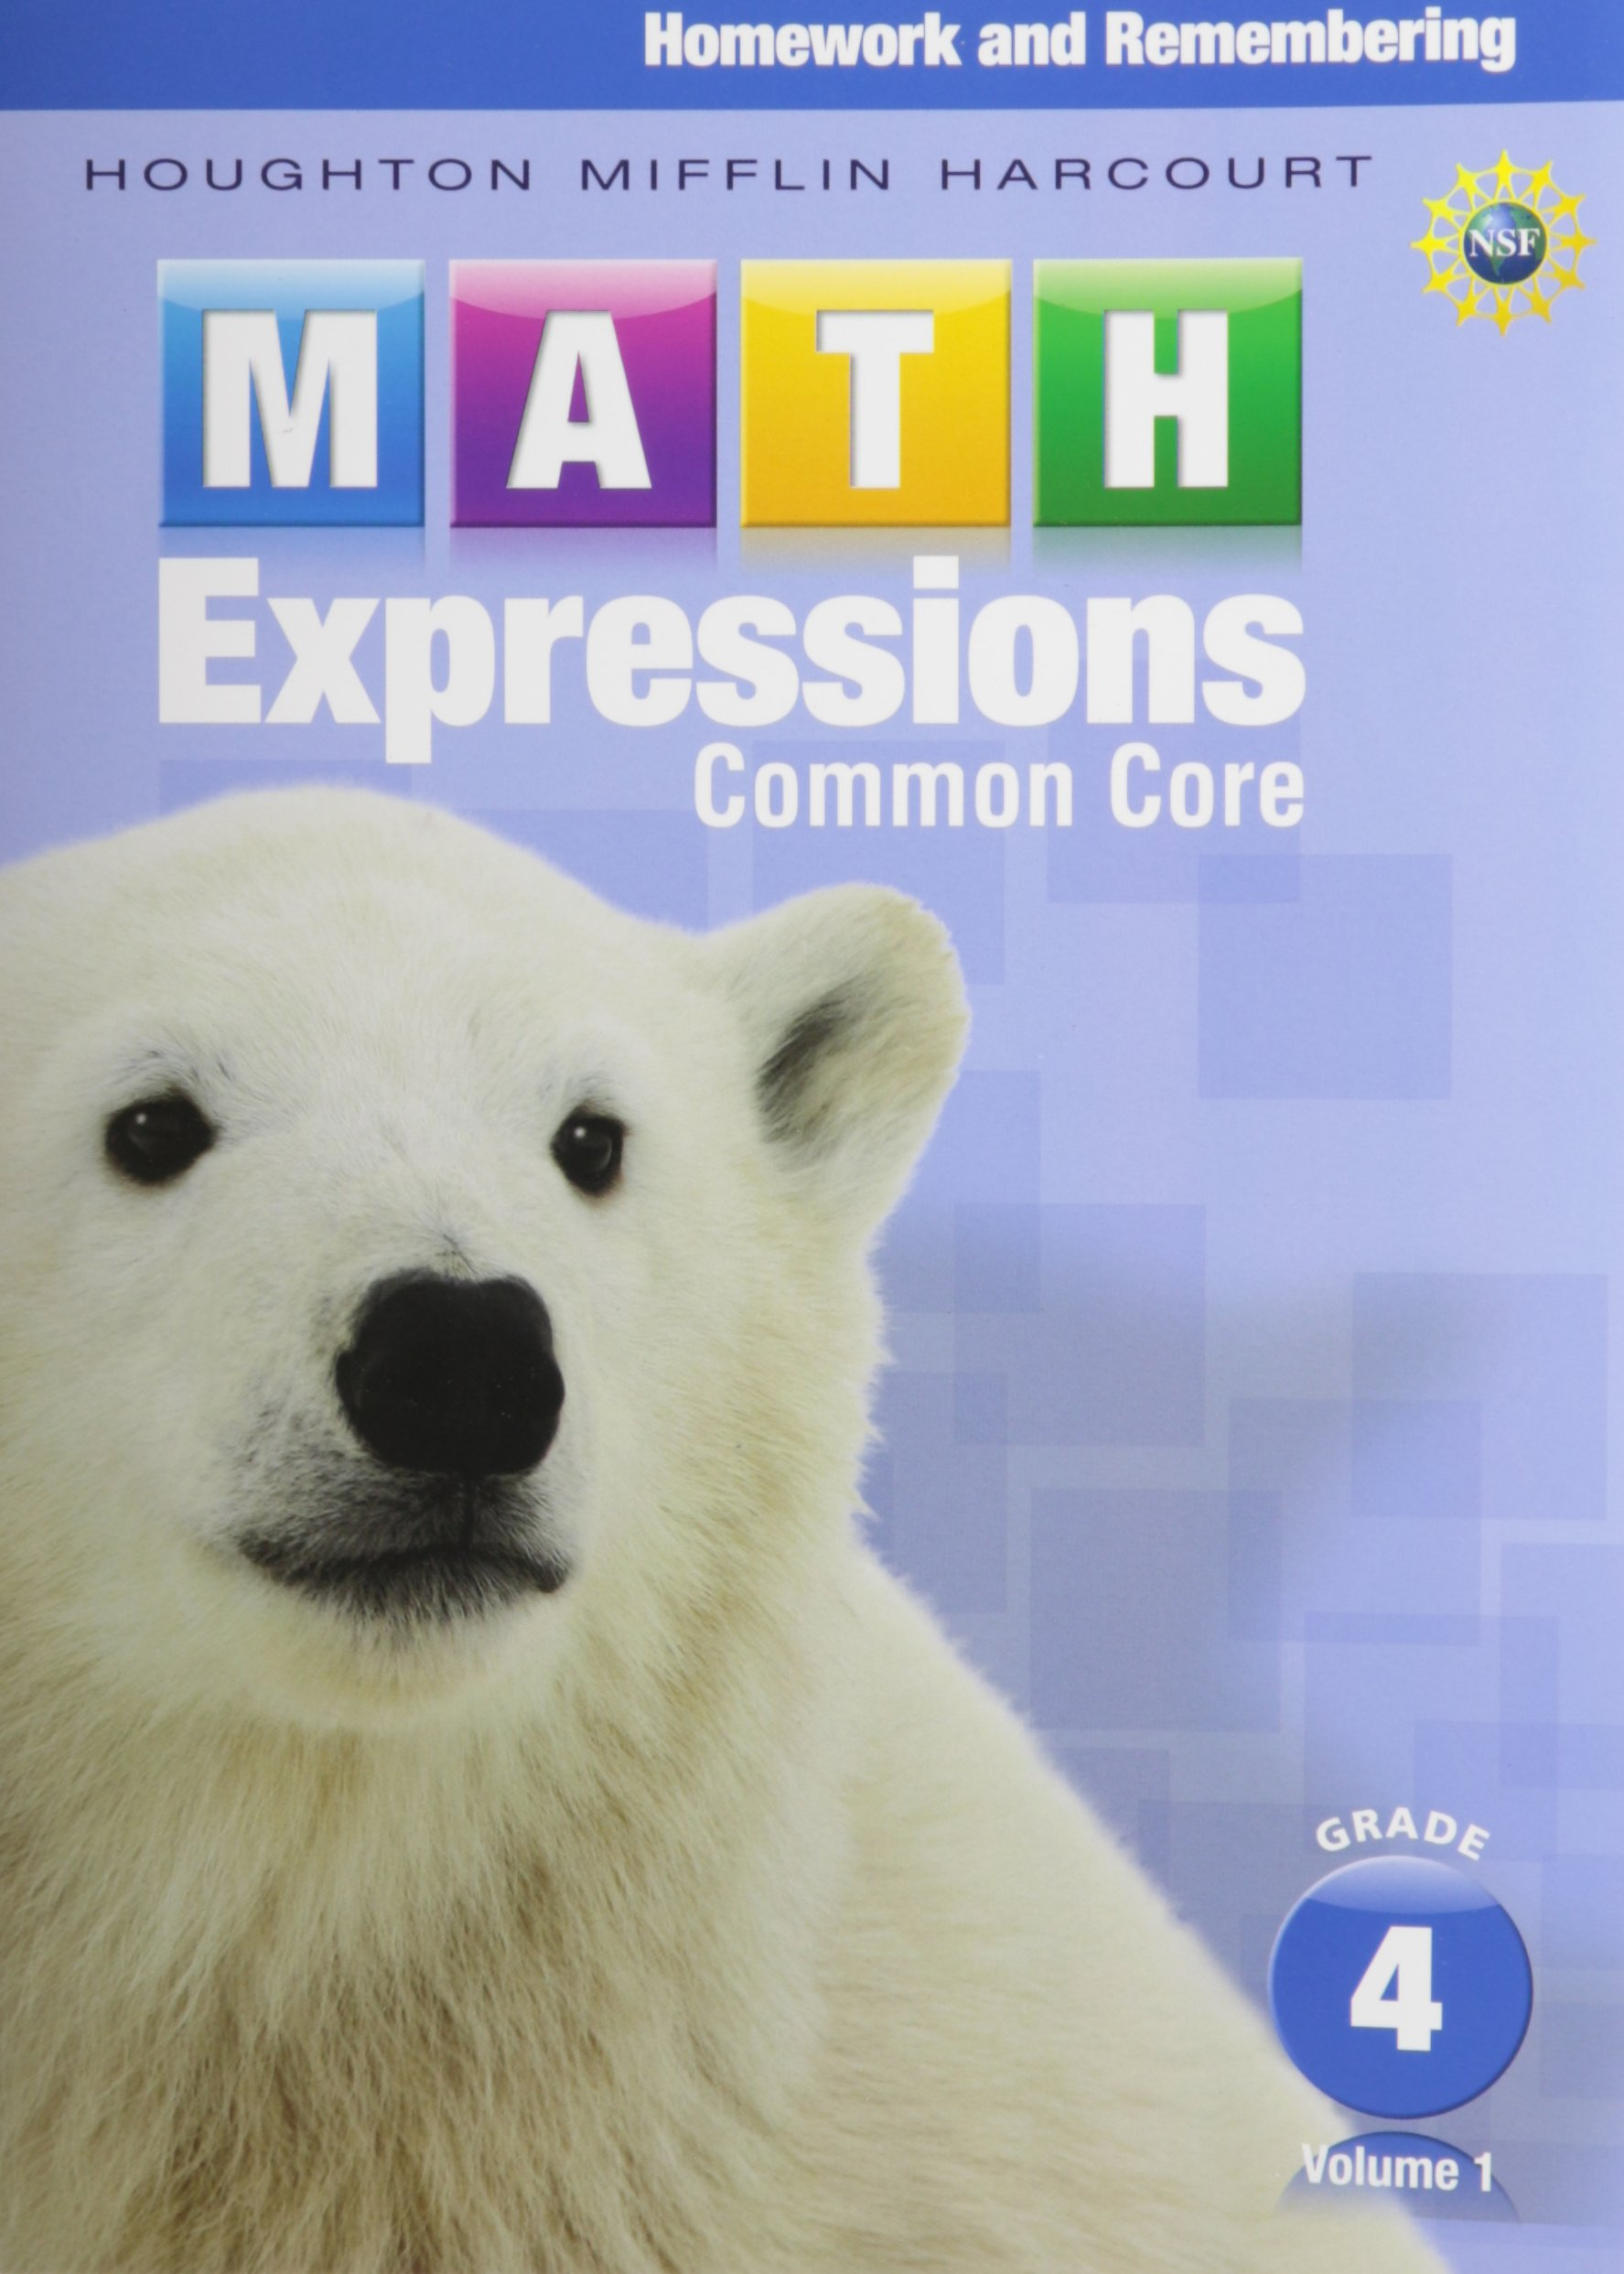 math expressions 5th grade homework and remembering answer key